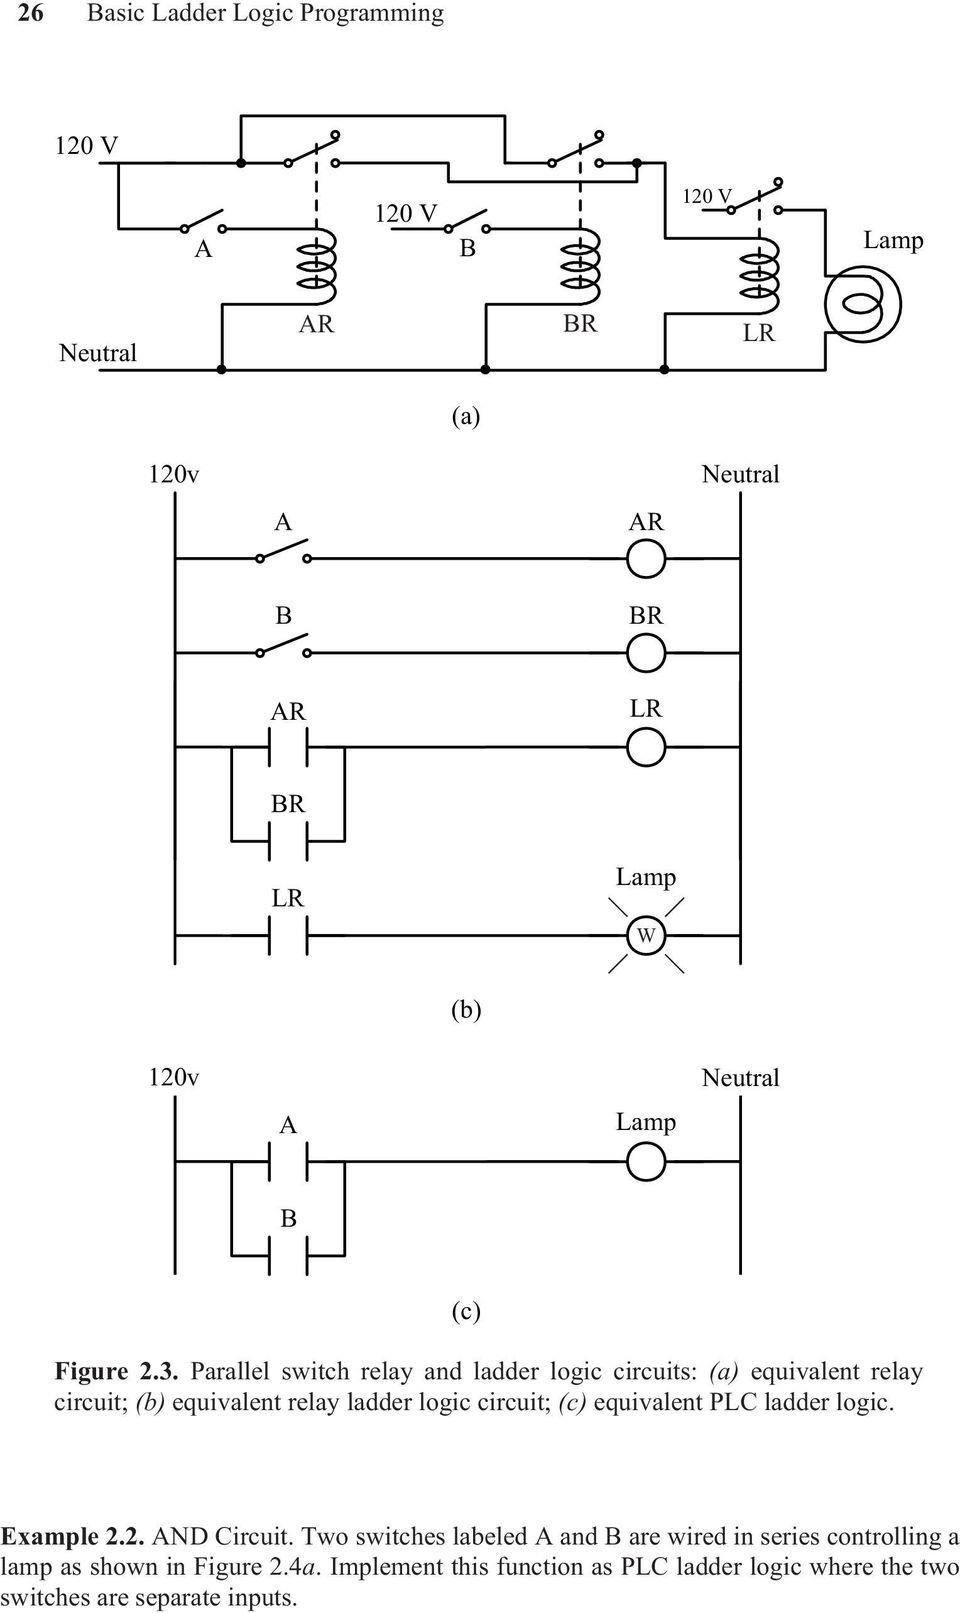 medium resolution of parallel switch relay and ladder logic circuits a equivalent relay circuit